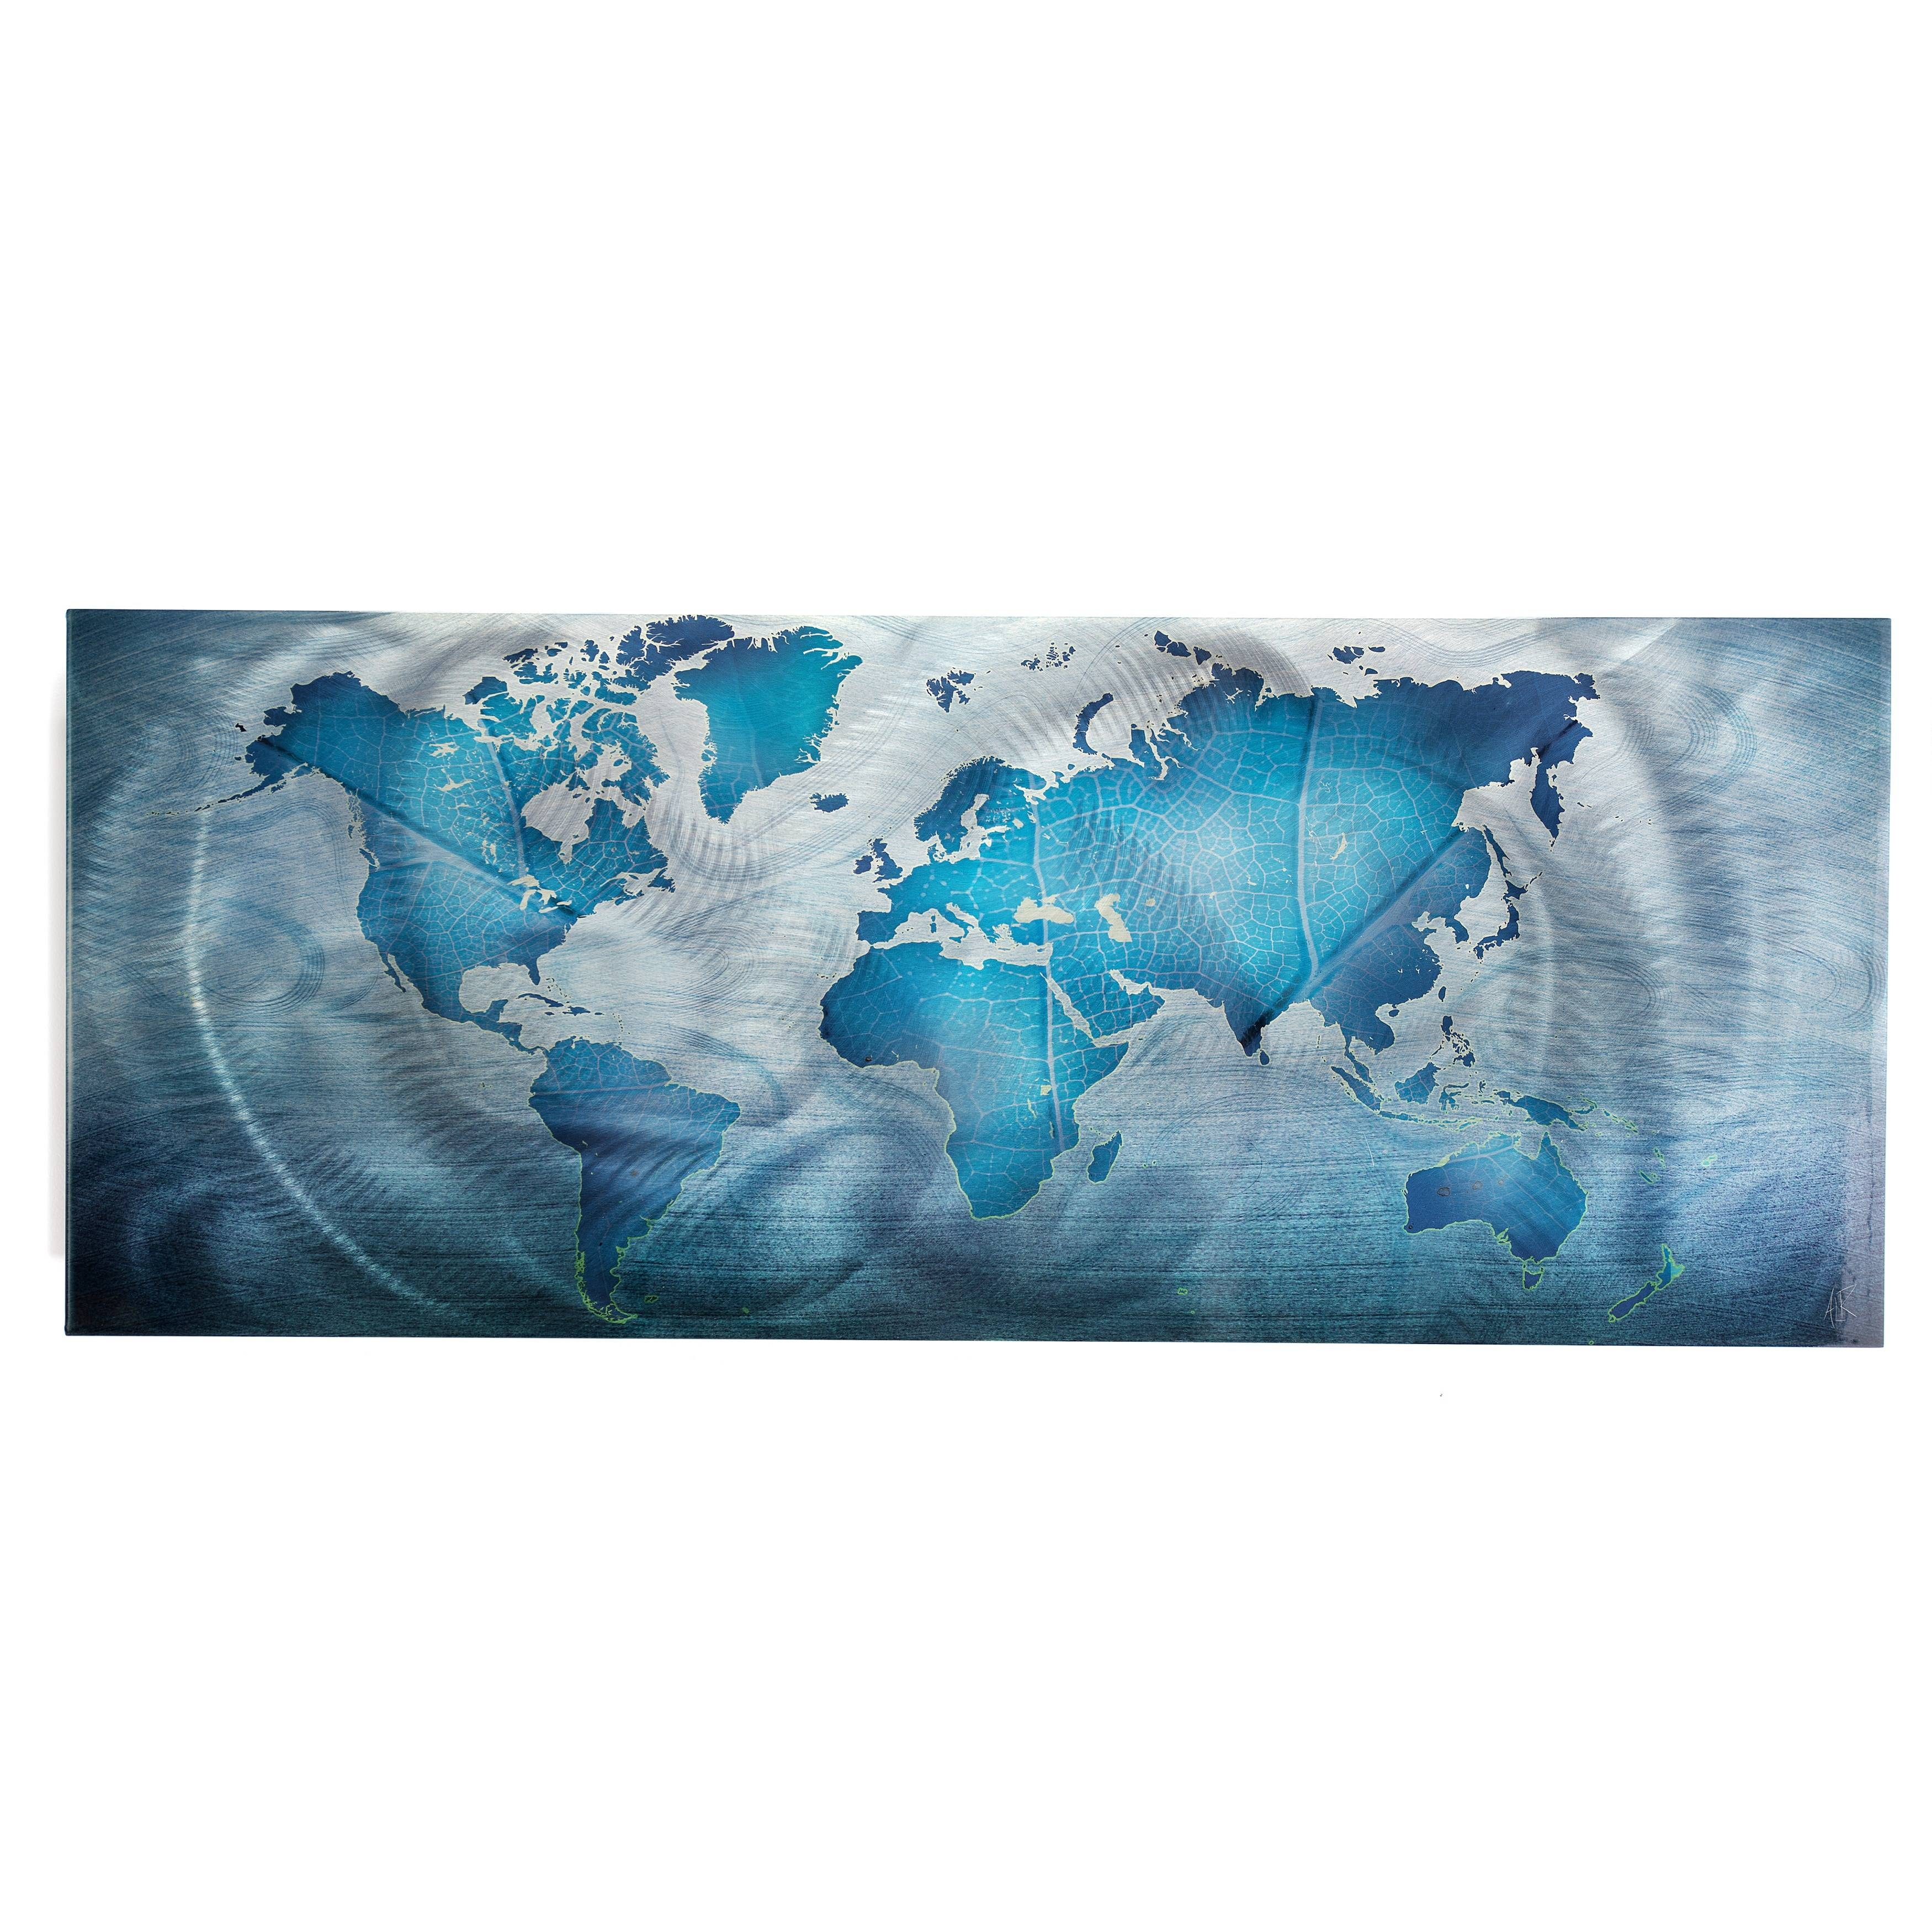 Land & Sea' Modern World Map Metal Wall Art – Free Shipping Today Intended For Most Popular Teal Metal Wall Art (View 7 of 20)